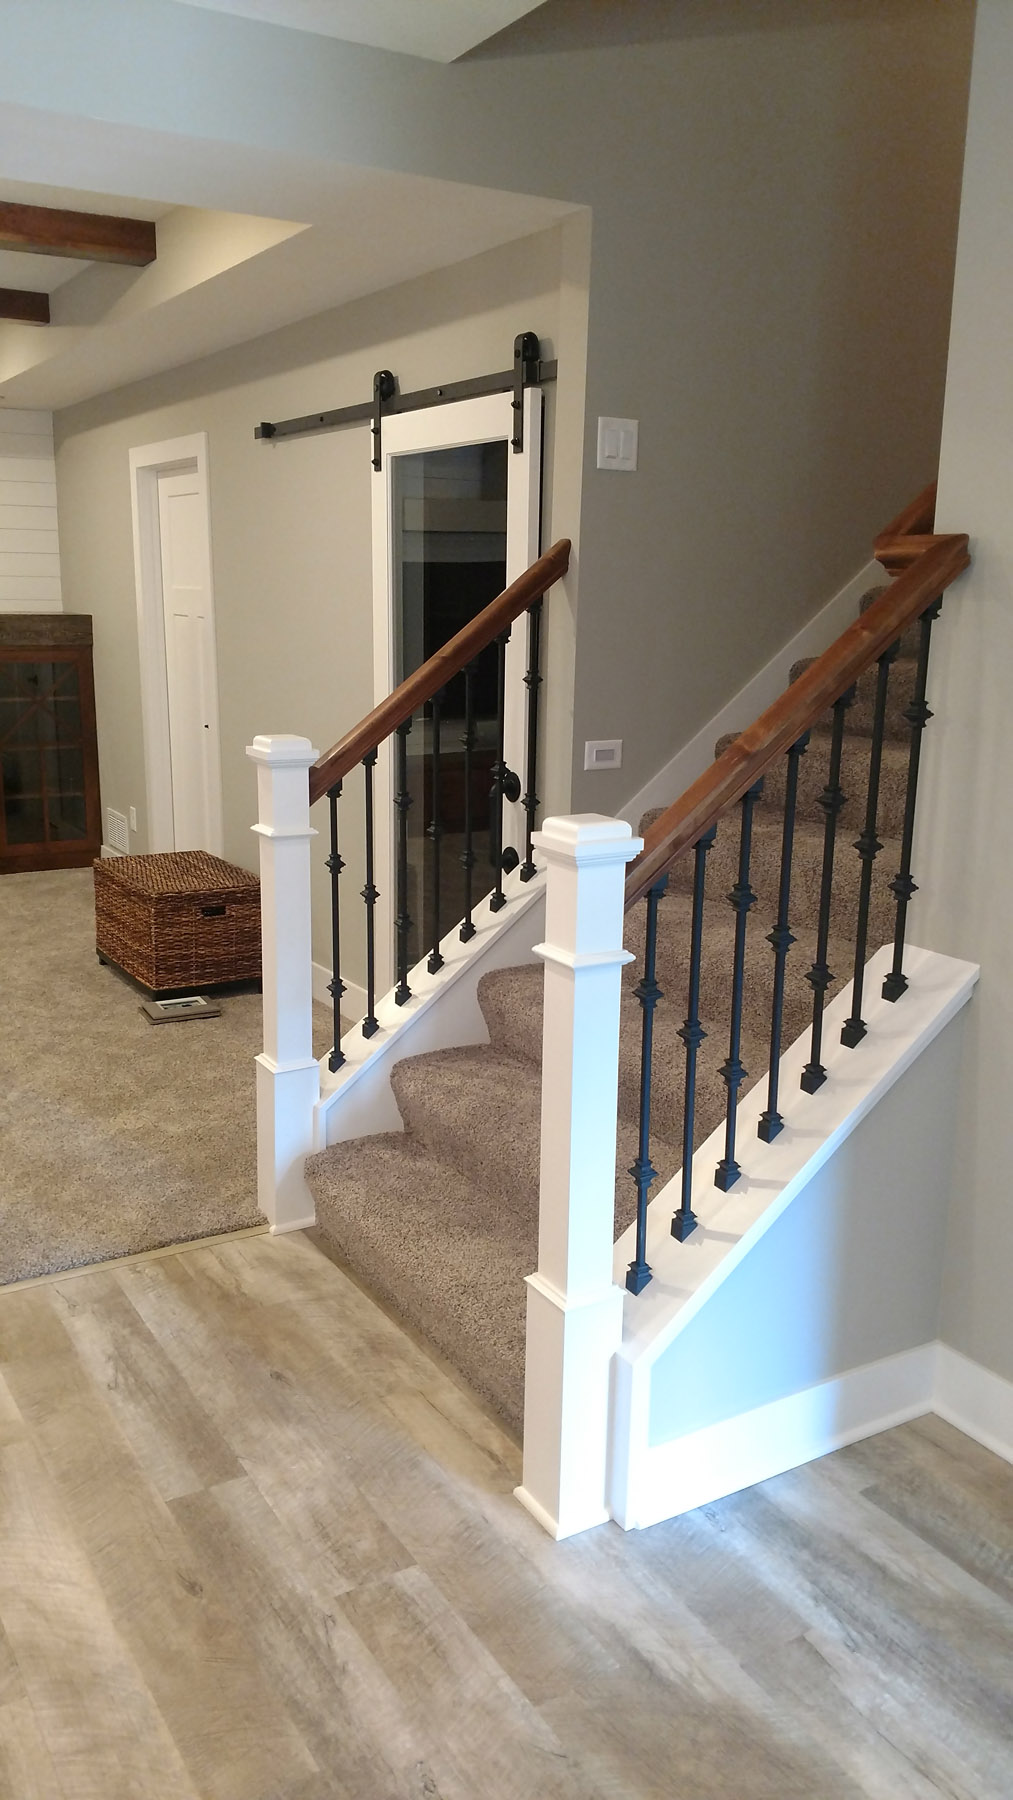 2-tone railing w/ wrought iron balusters